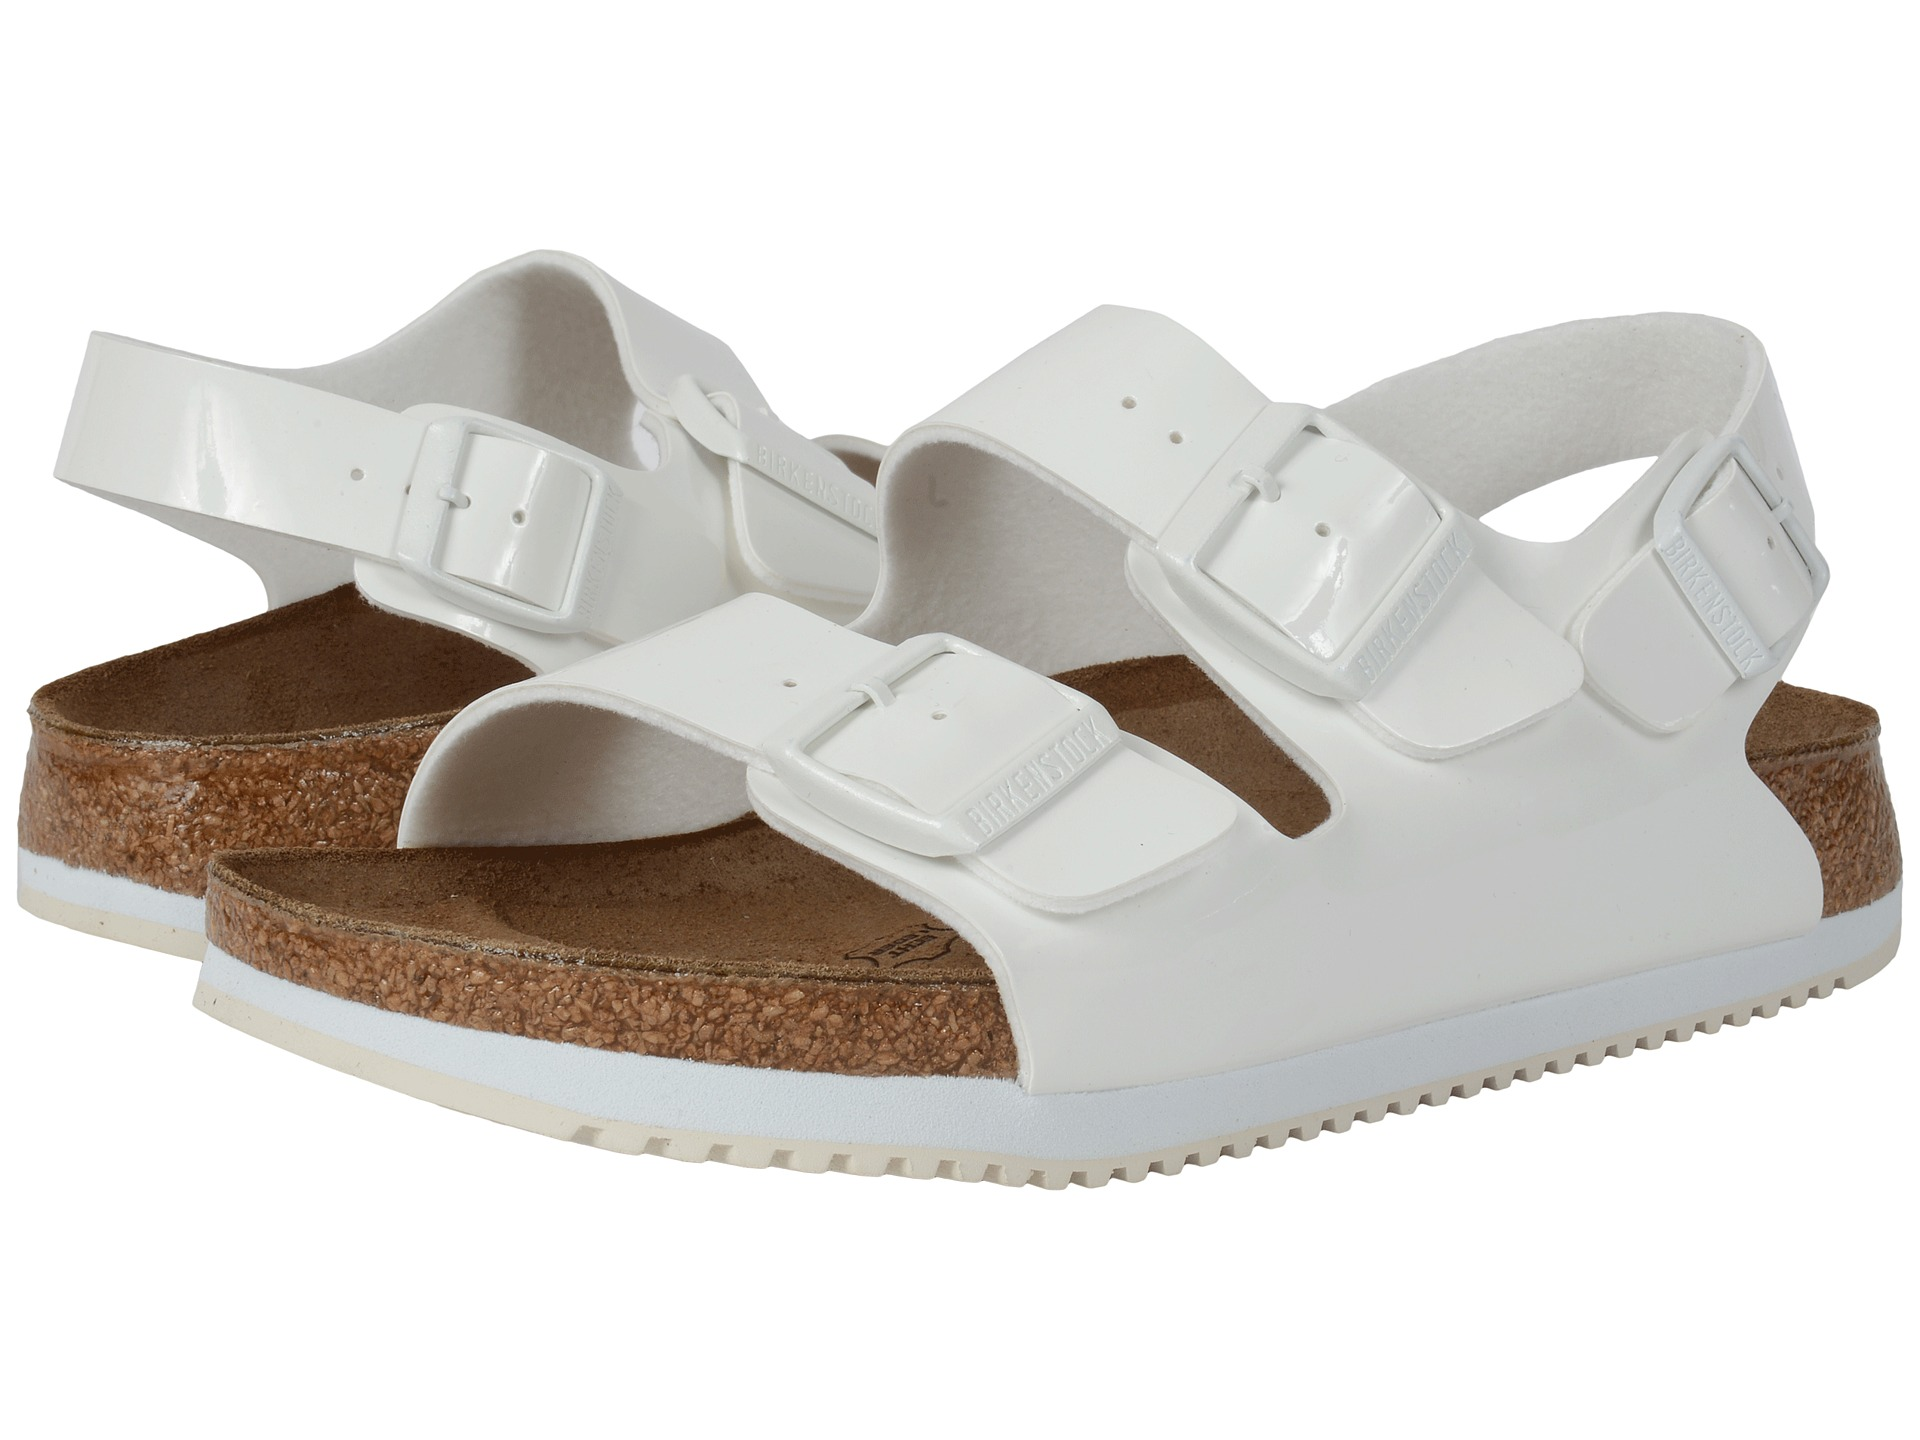 da753d166e5 Birkenstock Madrid Exquisite Sandals Thong Sandal